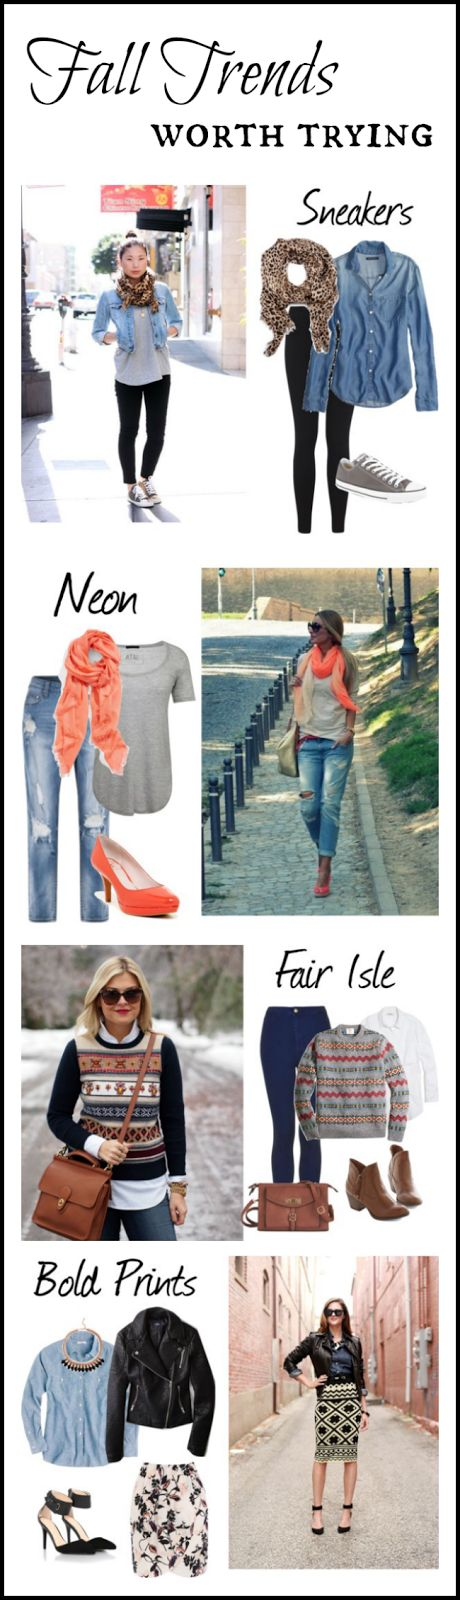 My New Favorite Outfit: Fall Trends Worth Trying